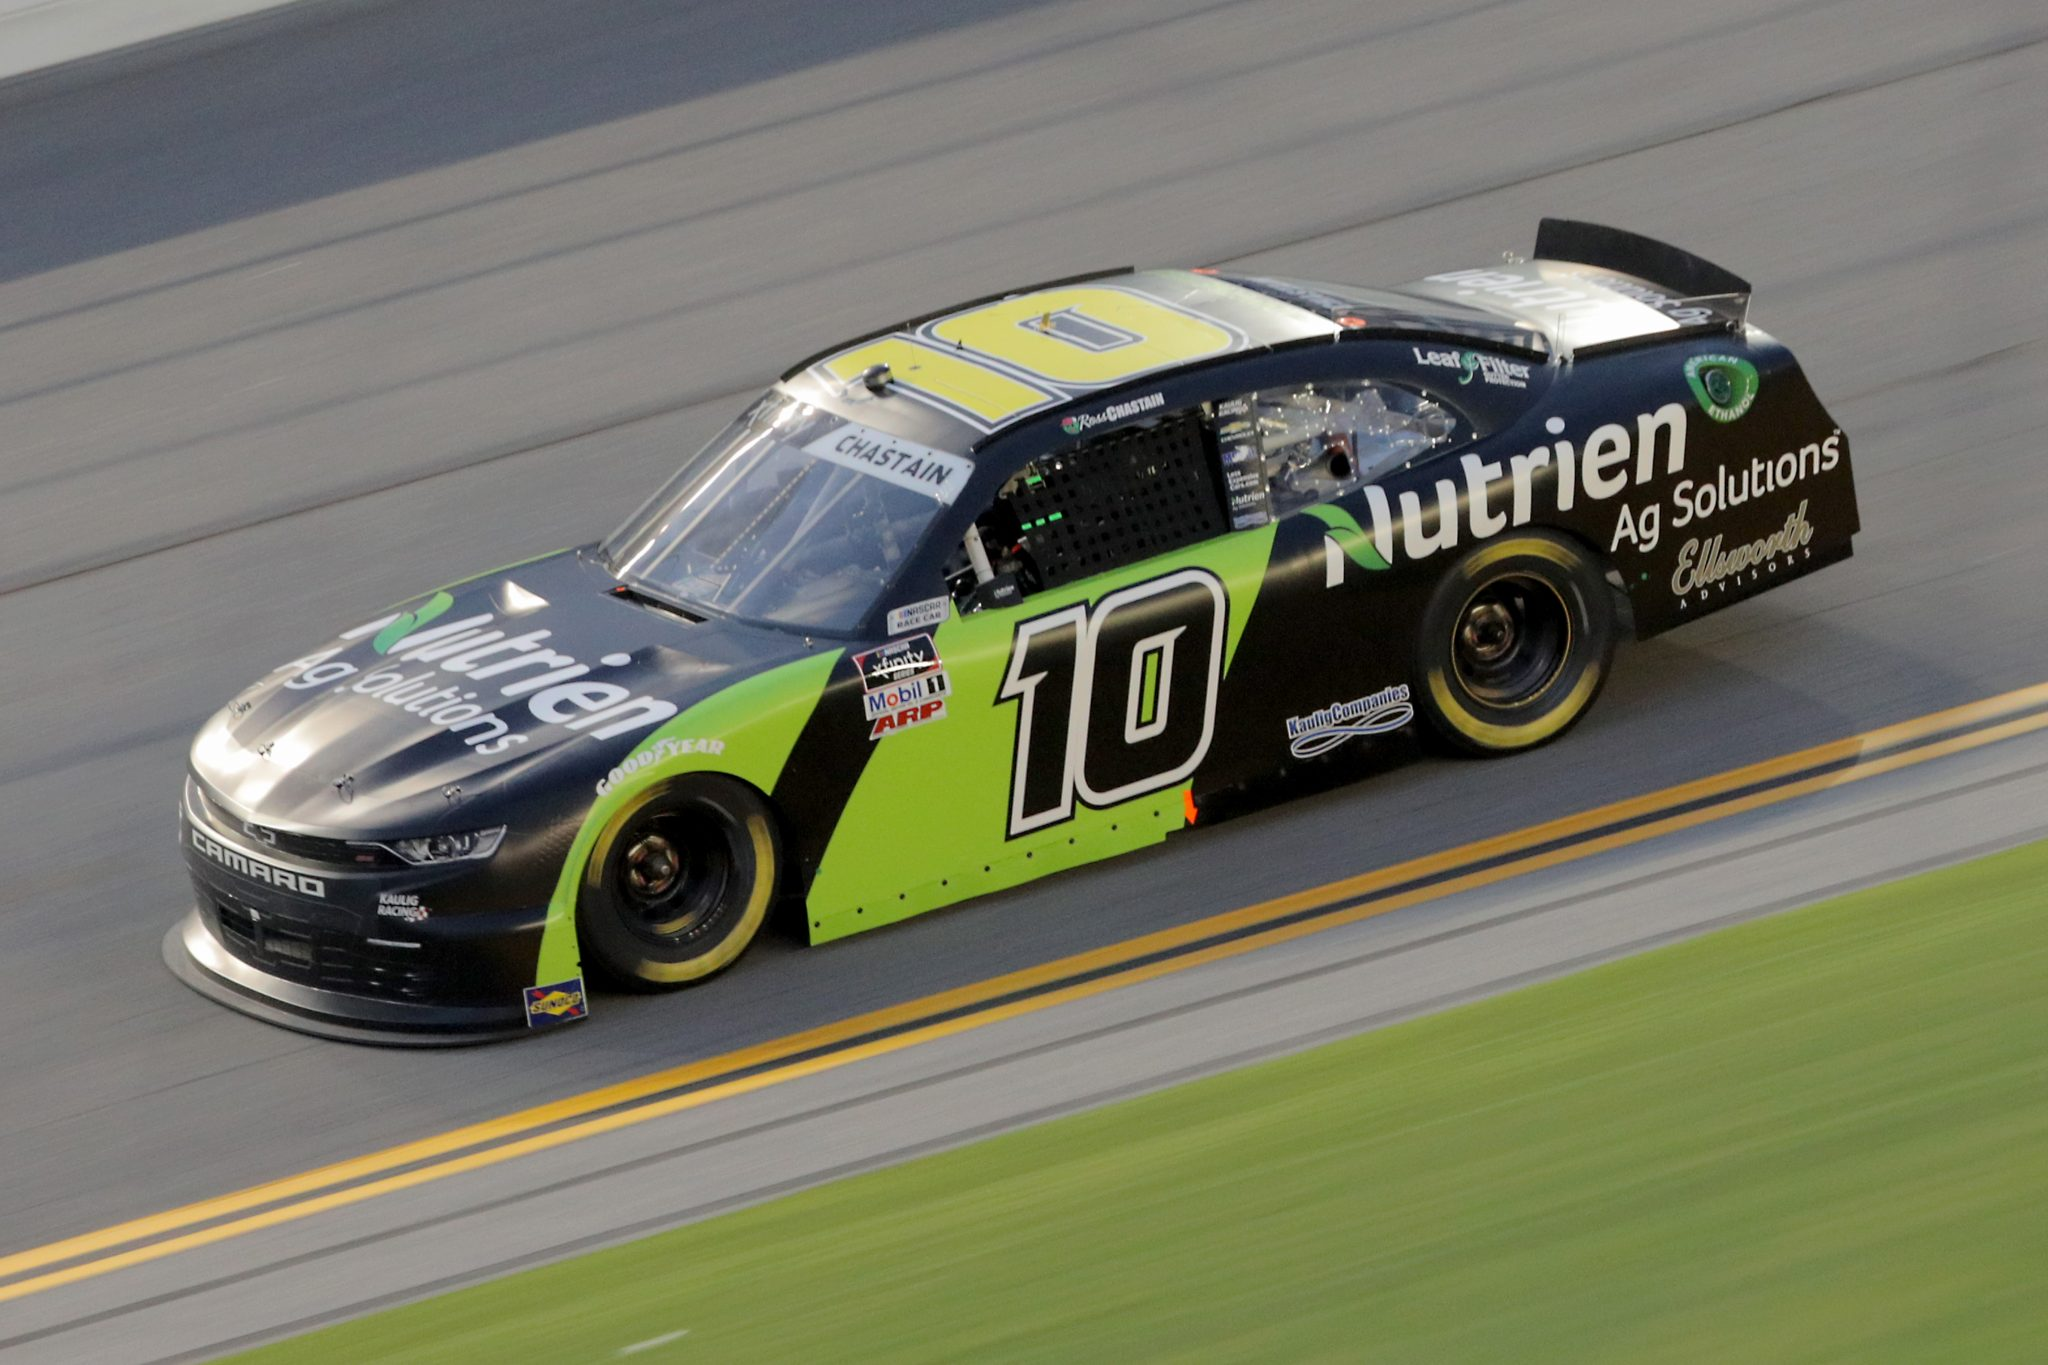 DAYTONA BEACH, FLORIDA - AUGUST 28: Ross Chastain, driver of the #10 Nutrien Ag Solutions Chevrolet, drives during the NASCAR Xfinity Series Wawa 250 Powered by Coca-Cola at Daytona International Speedway on August 28, 2020 in Daytona Beach, Florida. (Photo by Chris Graythen/Getty Images) | Getty Images